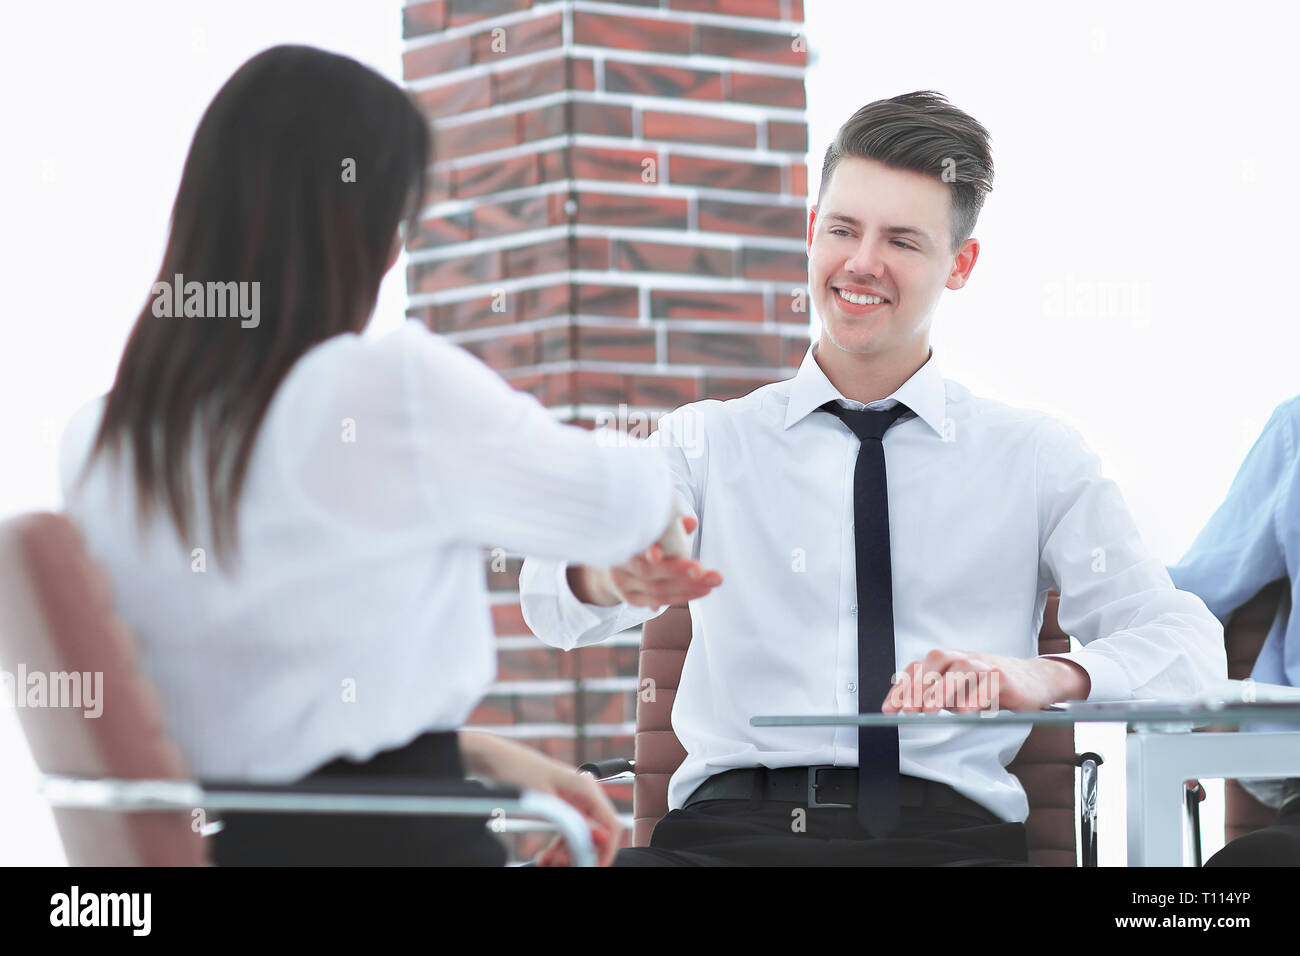 welcoming handshake of a Manager and the customer in the office. - Stock Image